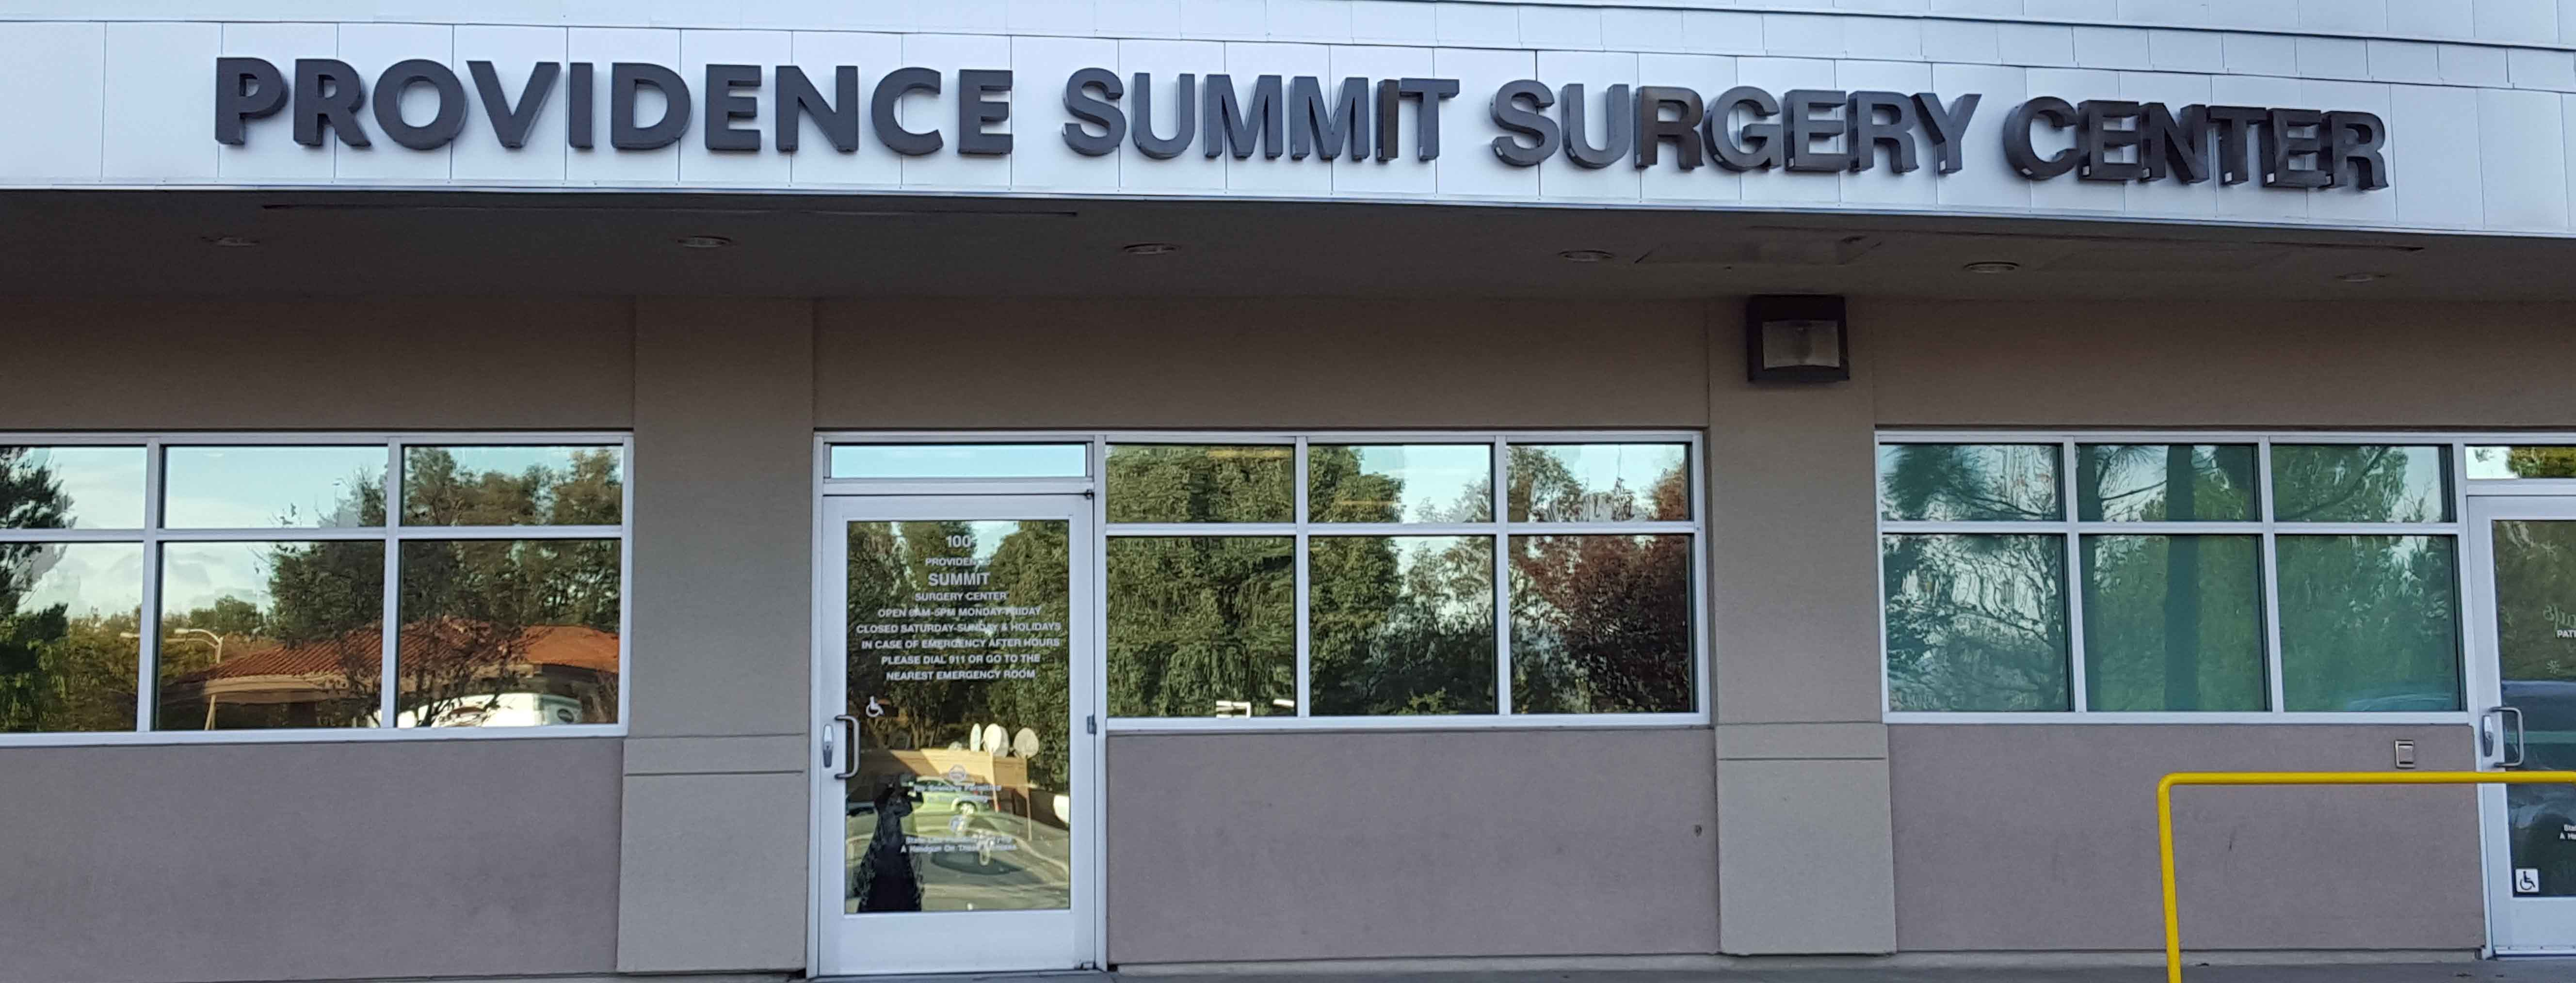 Providence Summit Building